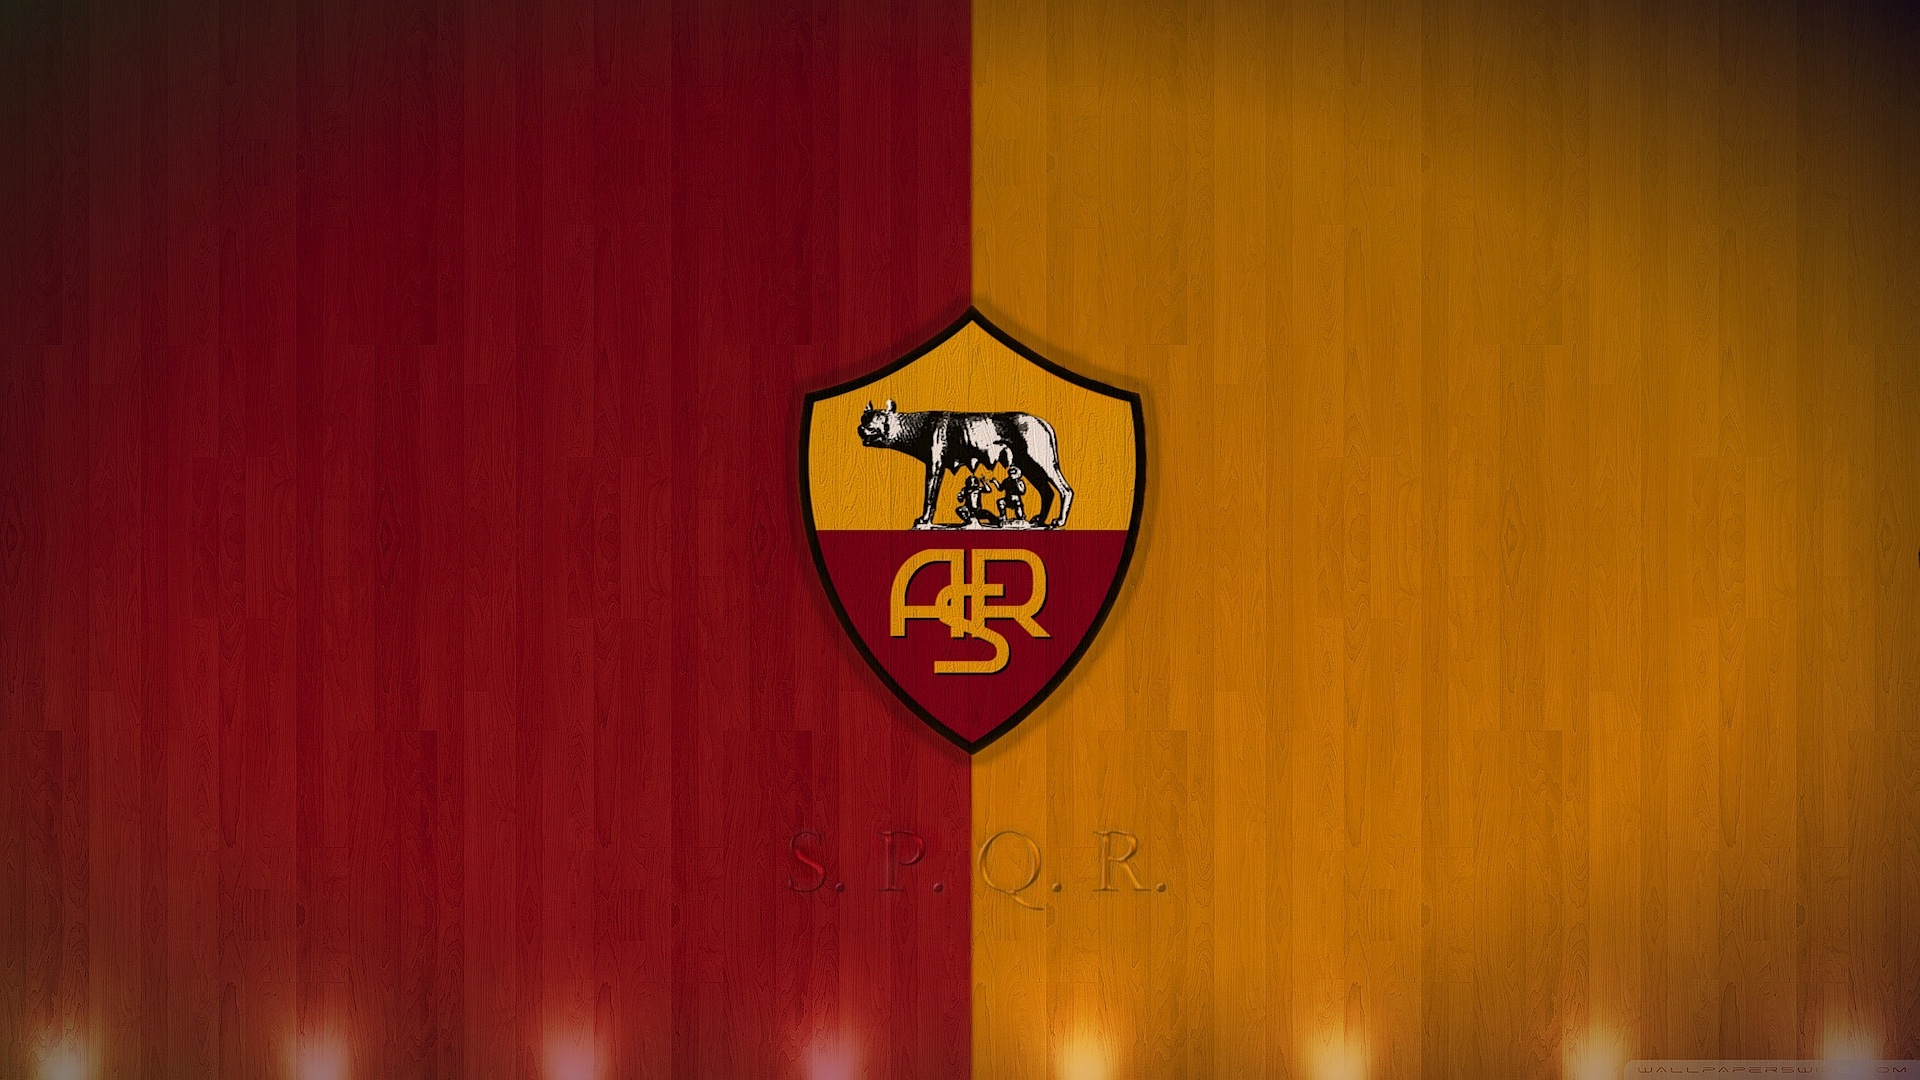 As Roma Wallpaper Pc Wallpaper WallpaperLepi 1920x1080